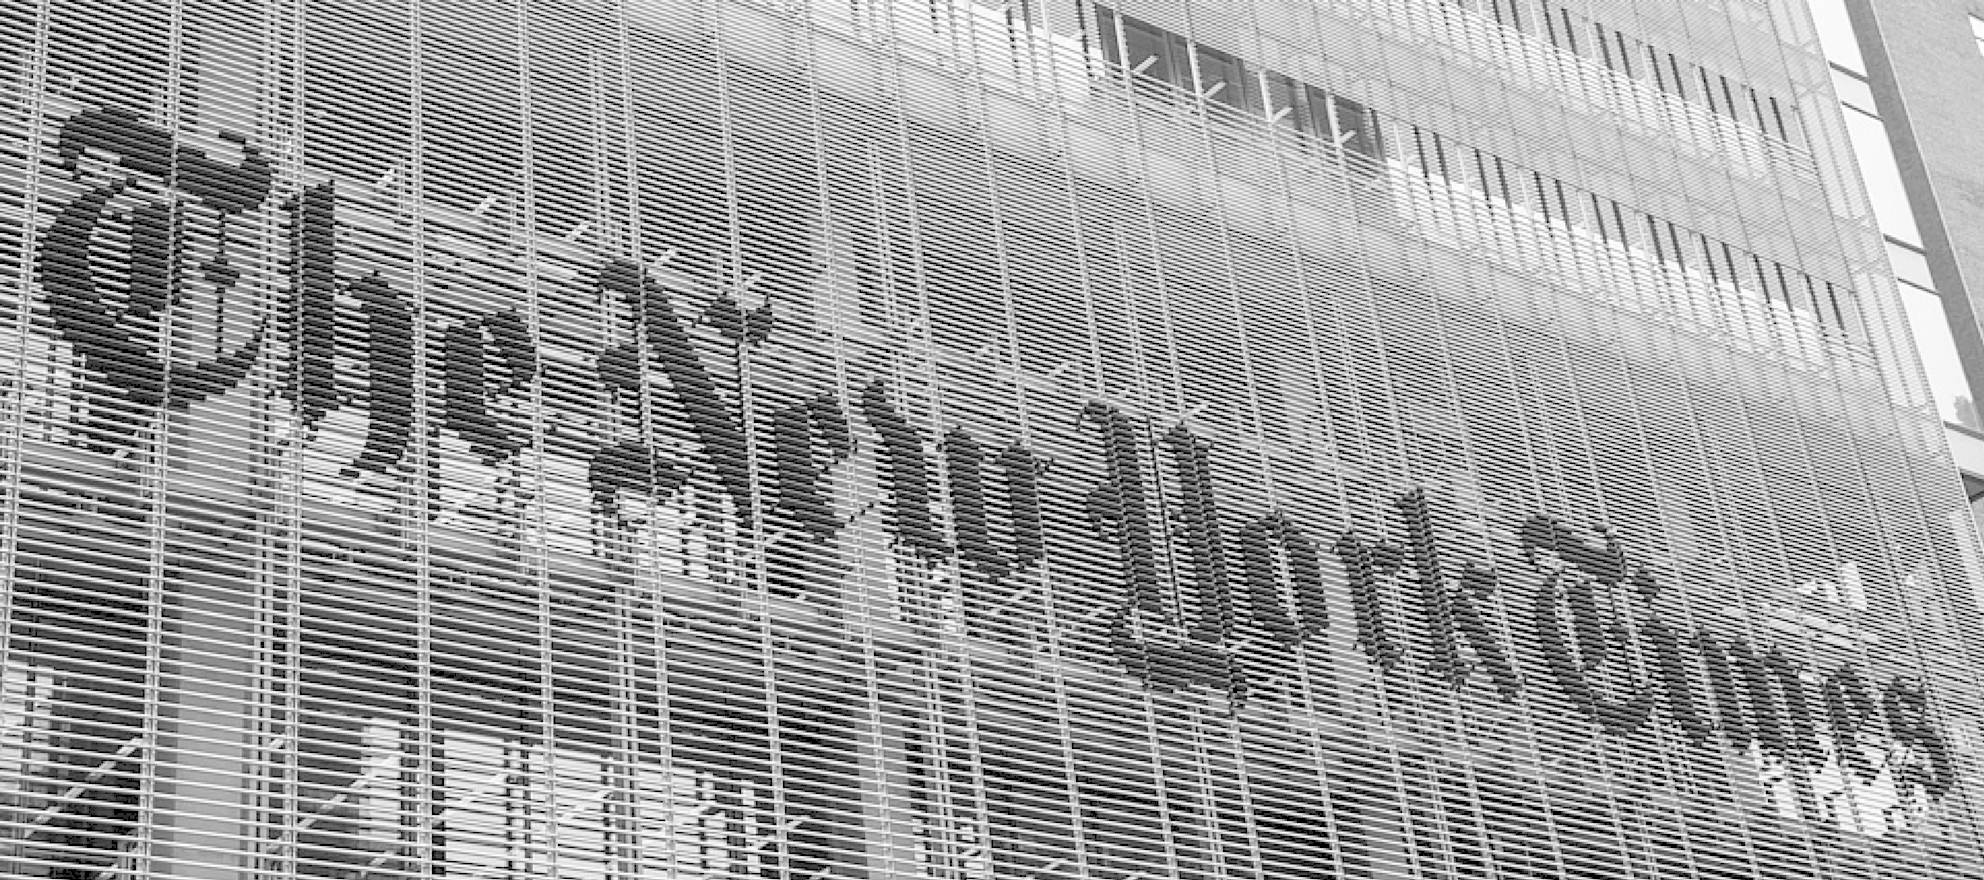 New York Times baking editorial content into real estate search